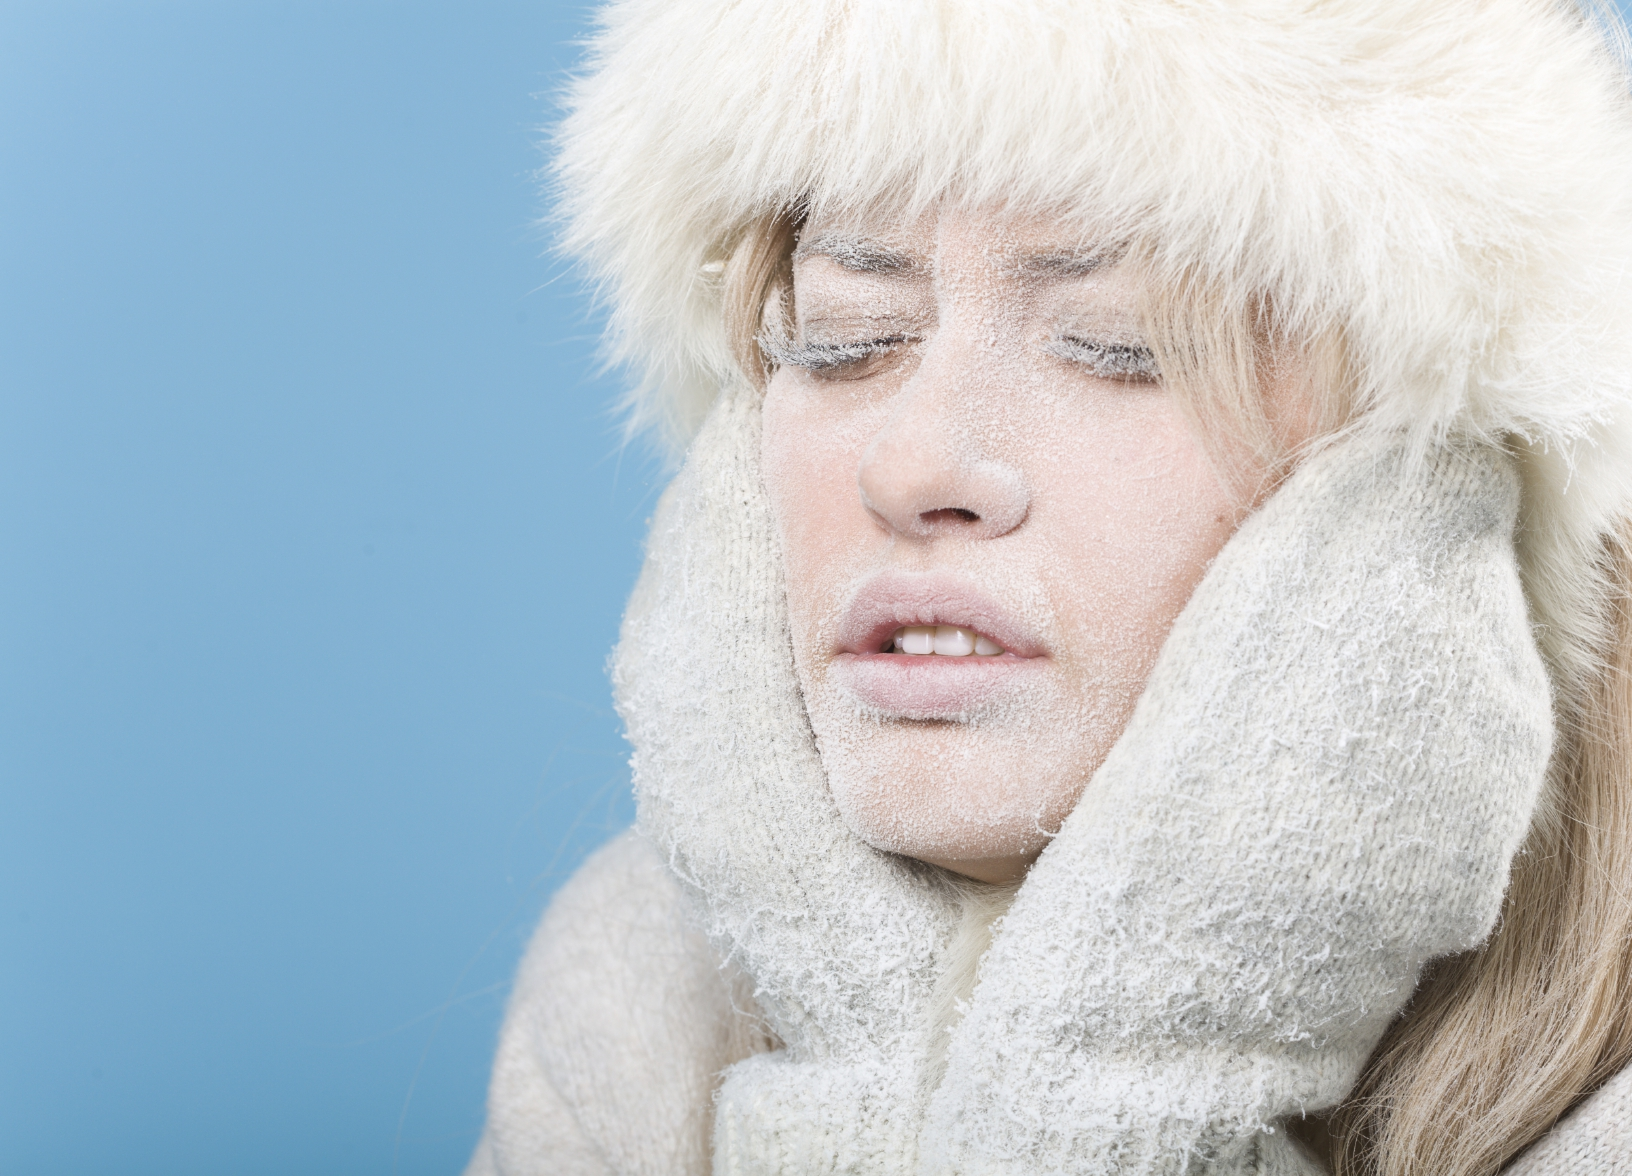 cold female skin  iStock_000014418061_Medium_2